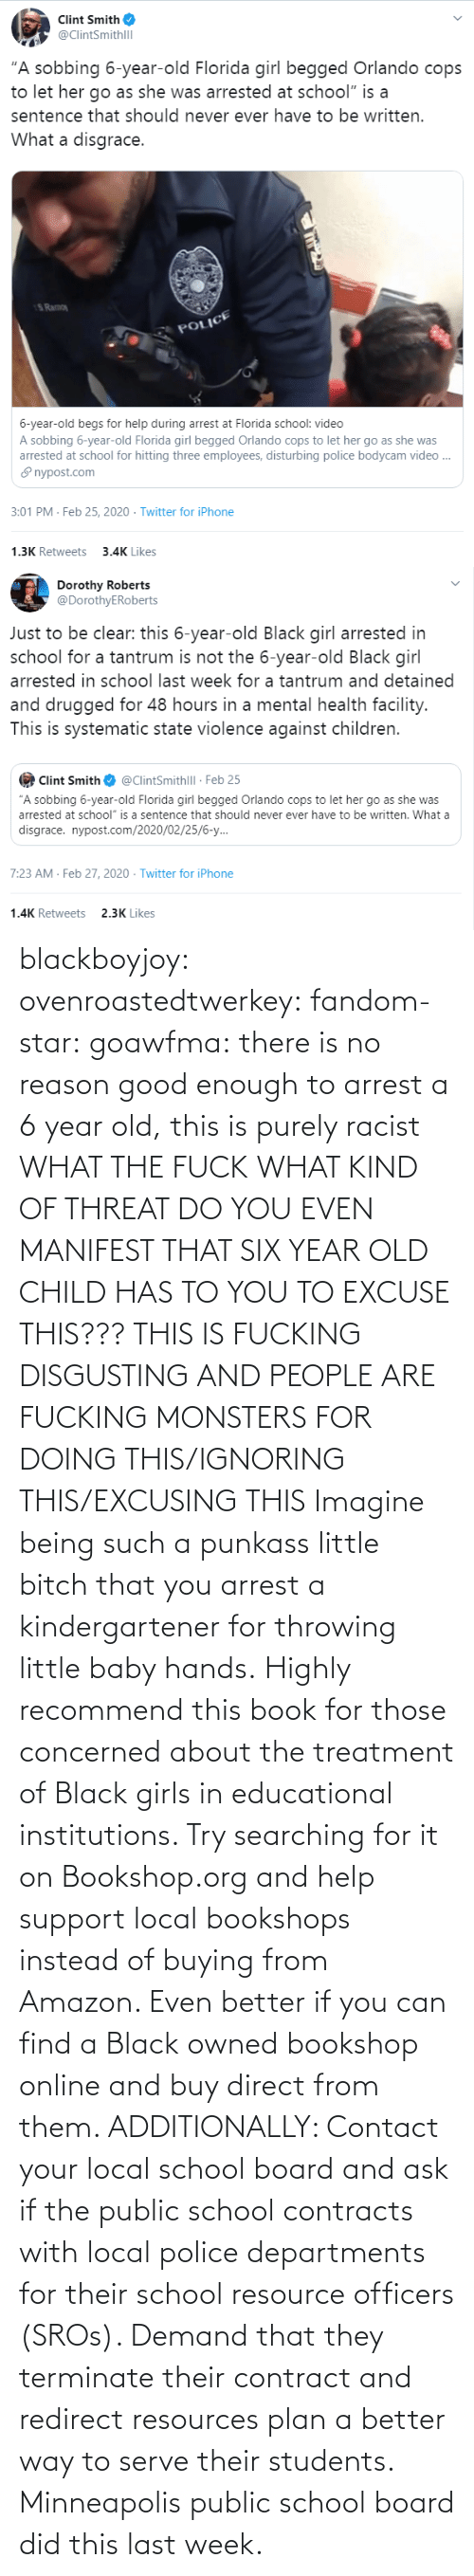 imagine: blackboyjoy:  ovenroastedtwerkey:  fandom-star:  goawfma: there is no reason good enough to arrest a 6 year old, this is purely racist WHAT THE FUCK WHAT KIND OF THREAT DO YOU EVEN MANIFEST THAT SIX YEAR OLD CHILD HAS TO YOU TO EXCUSE THIS??? THIS IS FUCKING DISGUSTING AND PEOPLE ARE FUCKING MONSTERS FOR DOING THIS/IGNORING THIS/EXCUSING THIS    Imagine being such a punkass little bitch that you arrest a kindergartener for throwing little baby hands.  Highly recommend this book for those concerned about the treatment of Black girls in educational institutions.  Try searching for it on Bookshop.org and help support local bookshops instead of buying from Amazon. Even better if you can find a Black owned bookshop online and buy direct from them.  ADDITIONALLY: Contact your local school board and ask if the public school contracts with local police departments for their school resource officers (SROs). Demand that they terminate their contract and redirect resources plan a better way to serve their students. Minneapolis public school board did this last week.